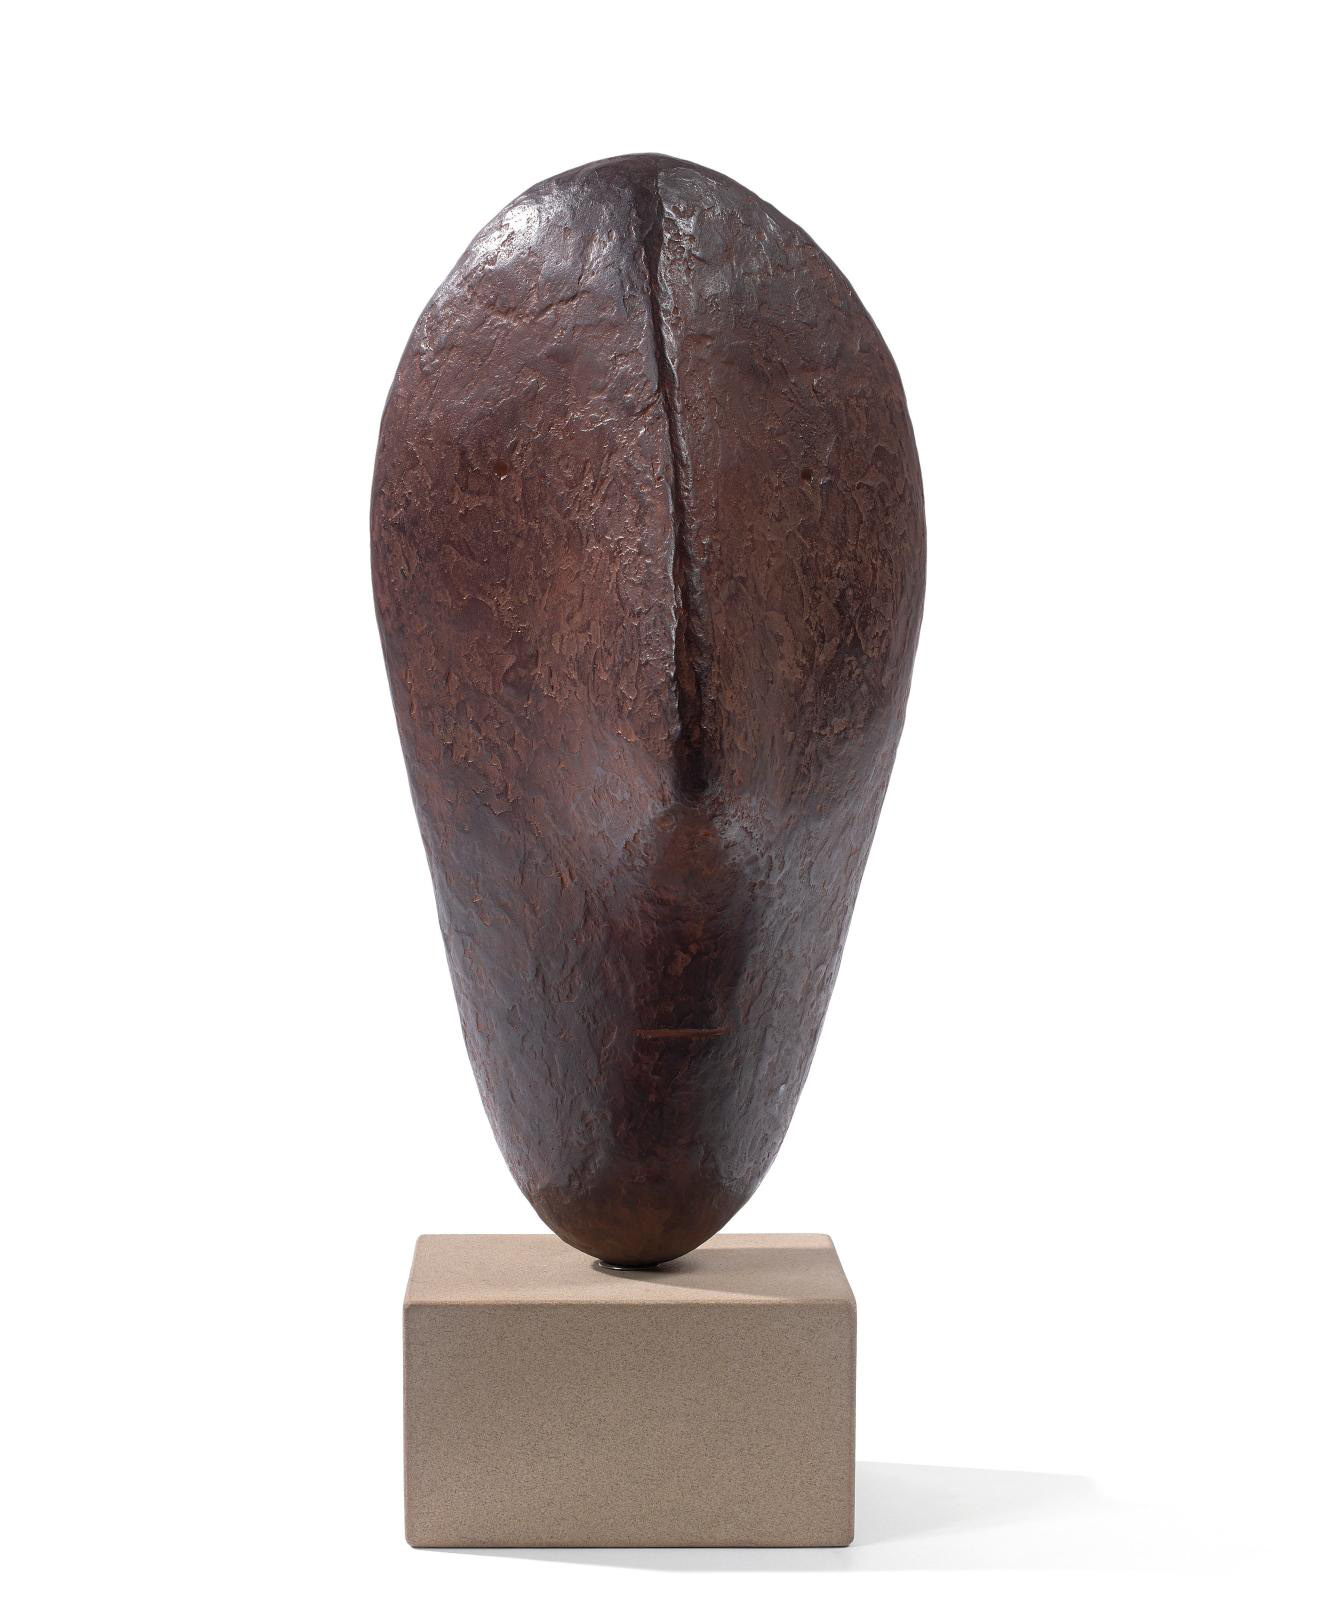 Fulfilling expectations tenfold to finish at €101,283, this bronze sculpture by William Turnbull (1922-2012) was the dark horse of Sylvie